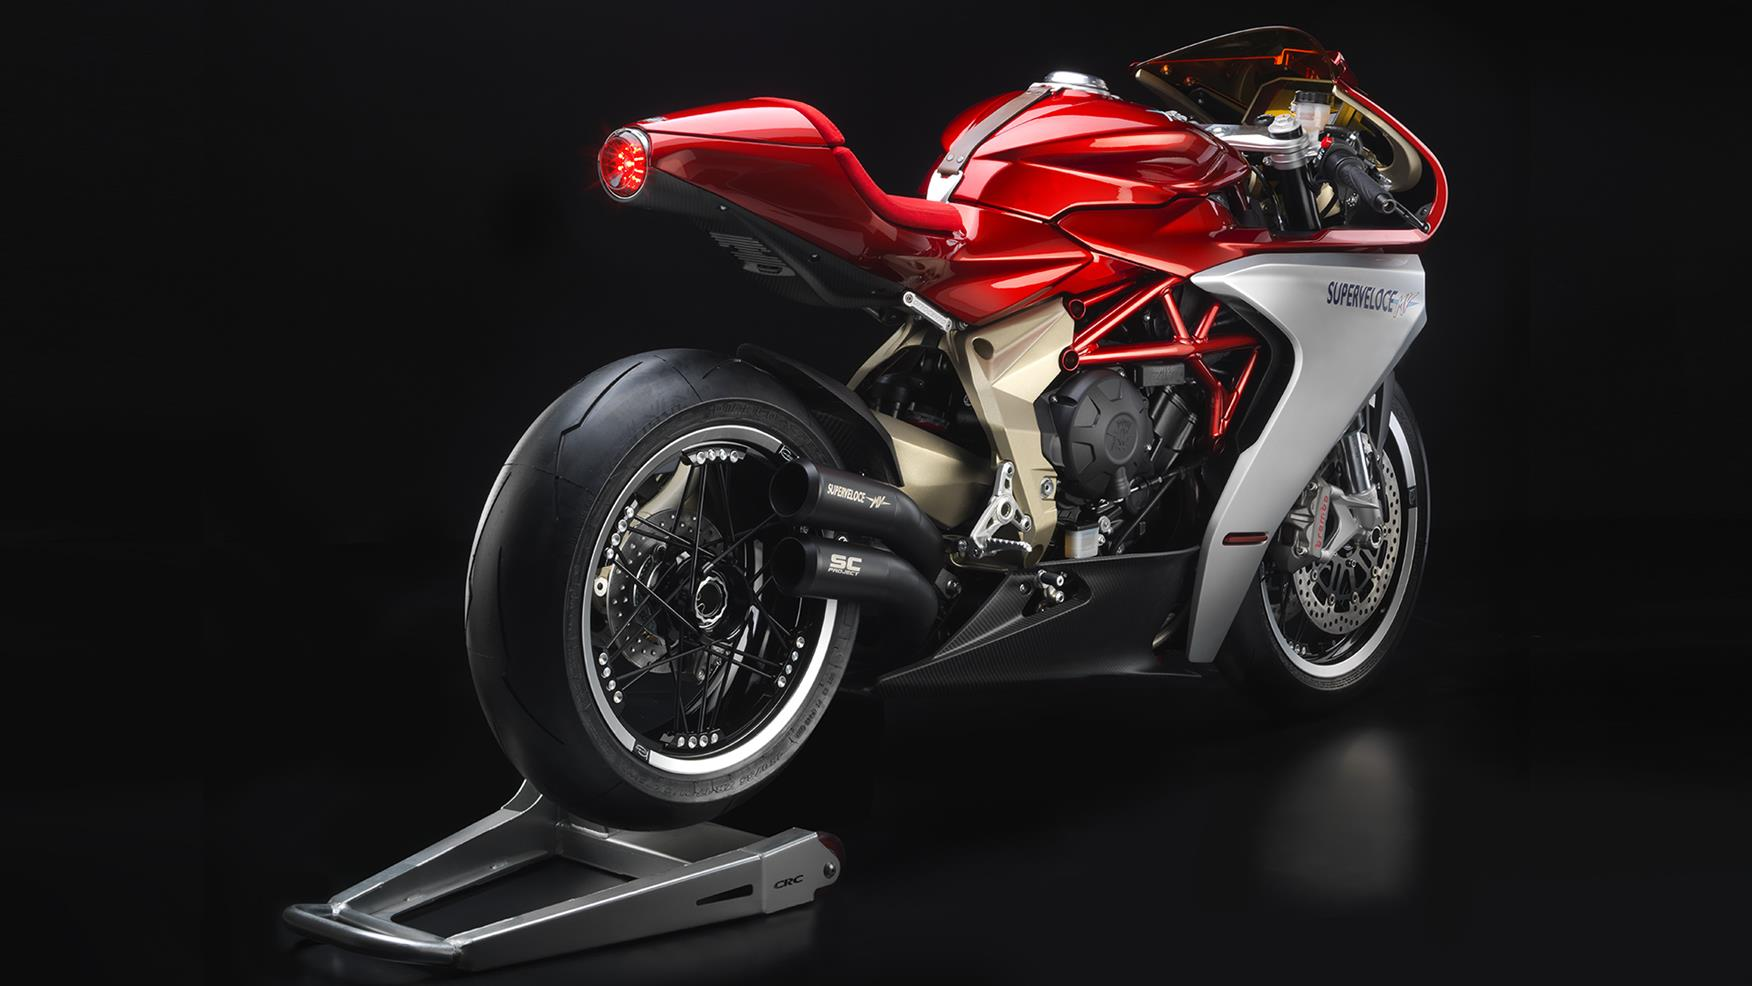 https://mcn-images.bauersecure.com/PageFiles/664241/MV-Agusta-Superveloce-800-03.jpg